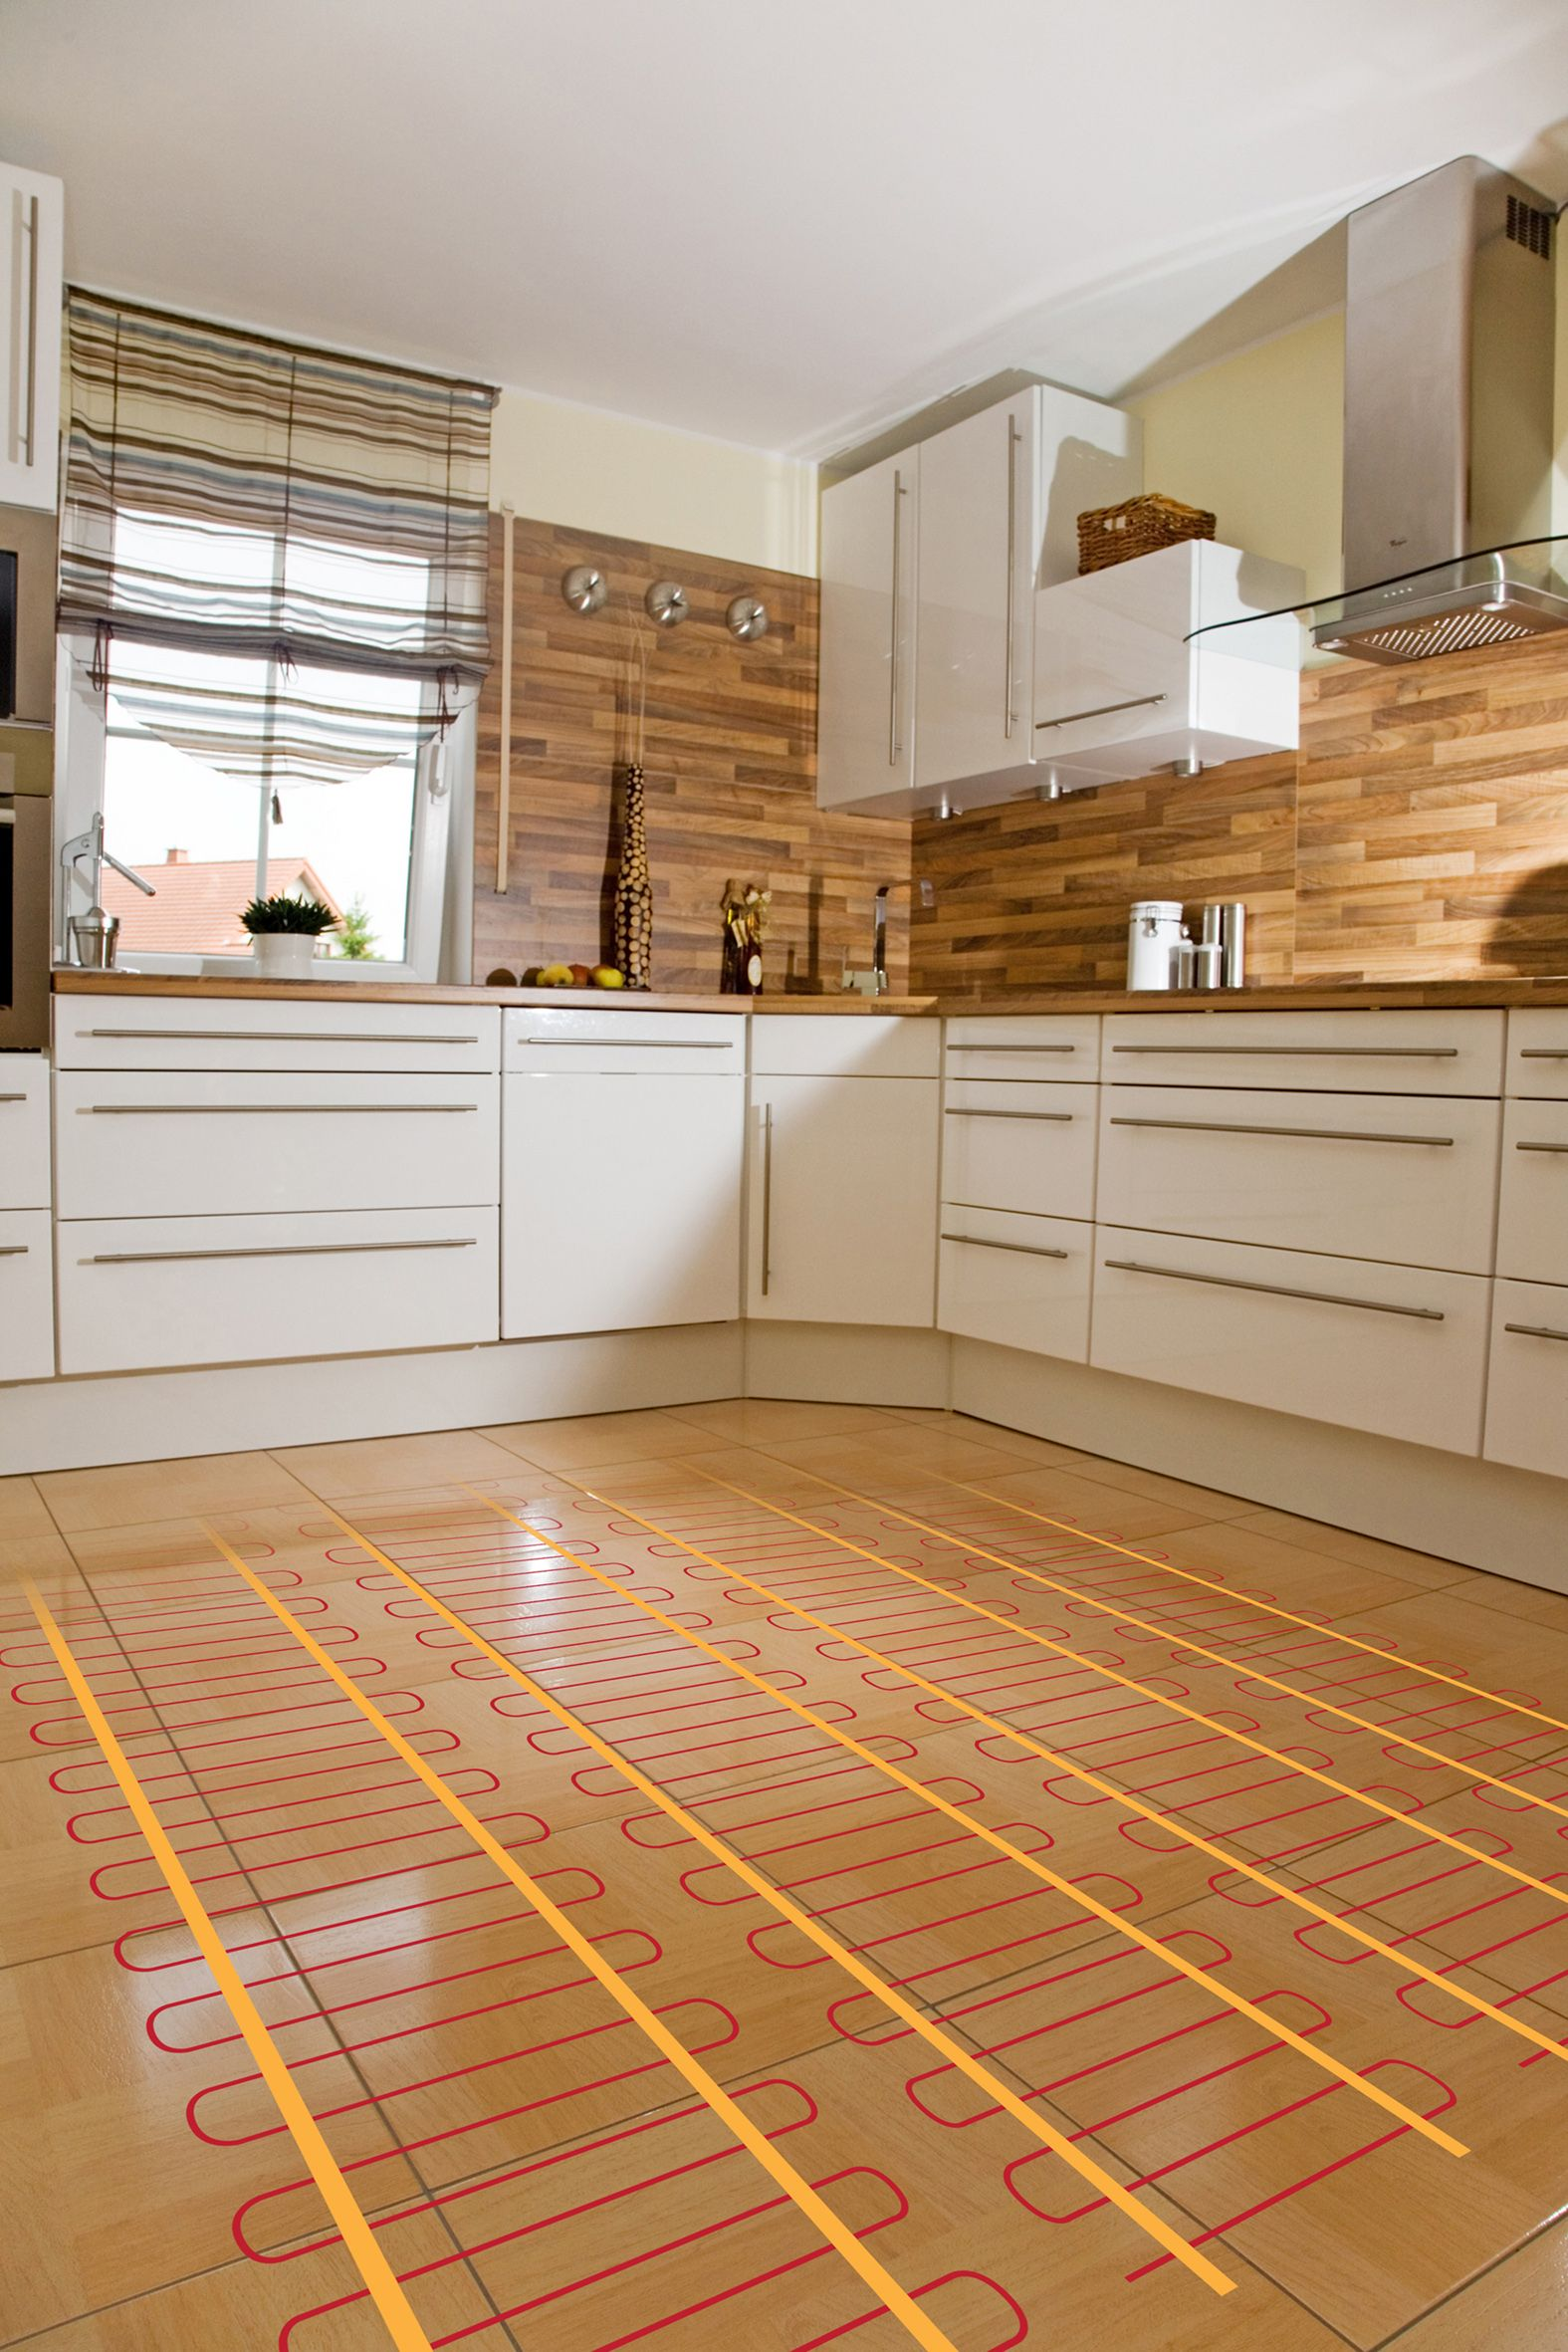 Heated Kitchen Floor Did You Know Electric Tankless Water Heaters Are Great For Radiant